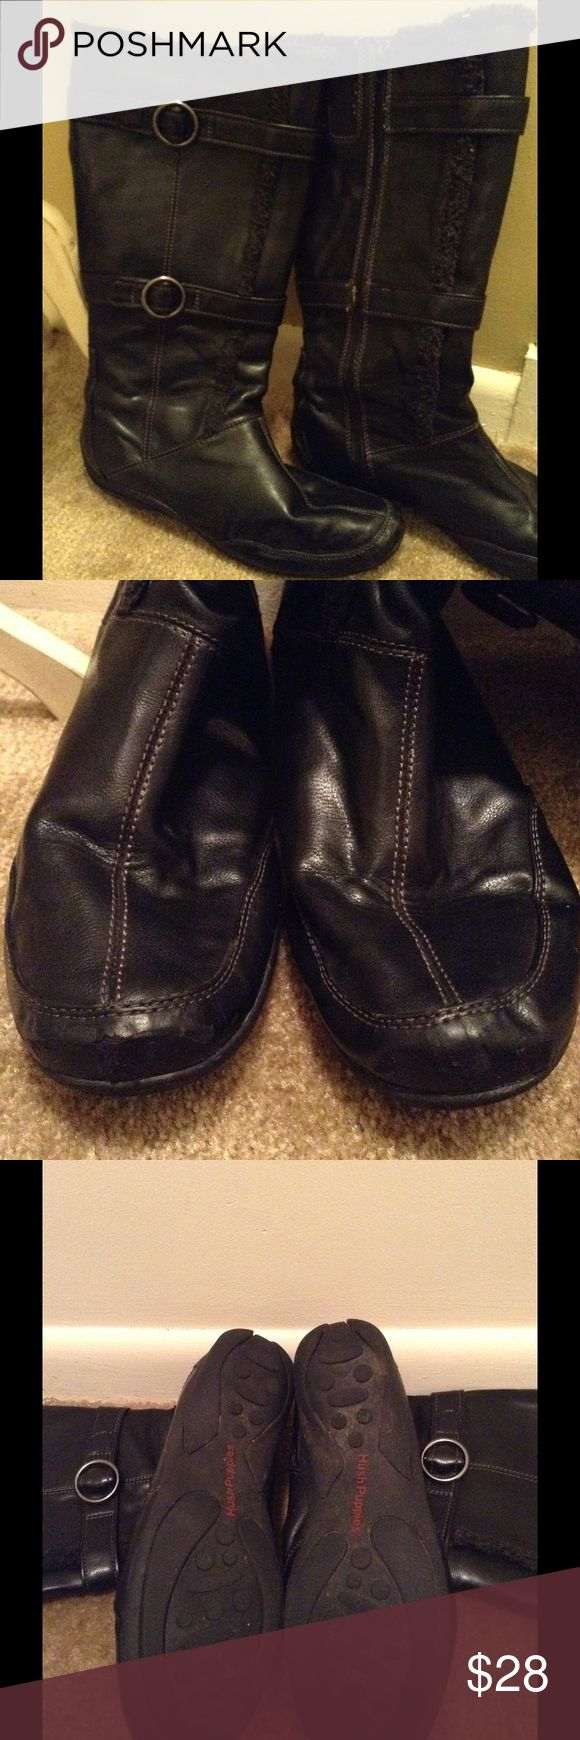 HUSH PUPPIES Black Boots Worn but in great condition. Hush Puppies Shoes Winter & Rain Boots